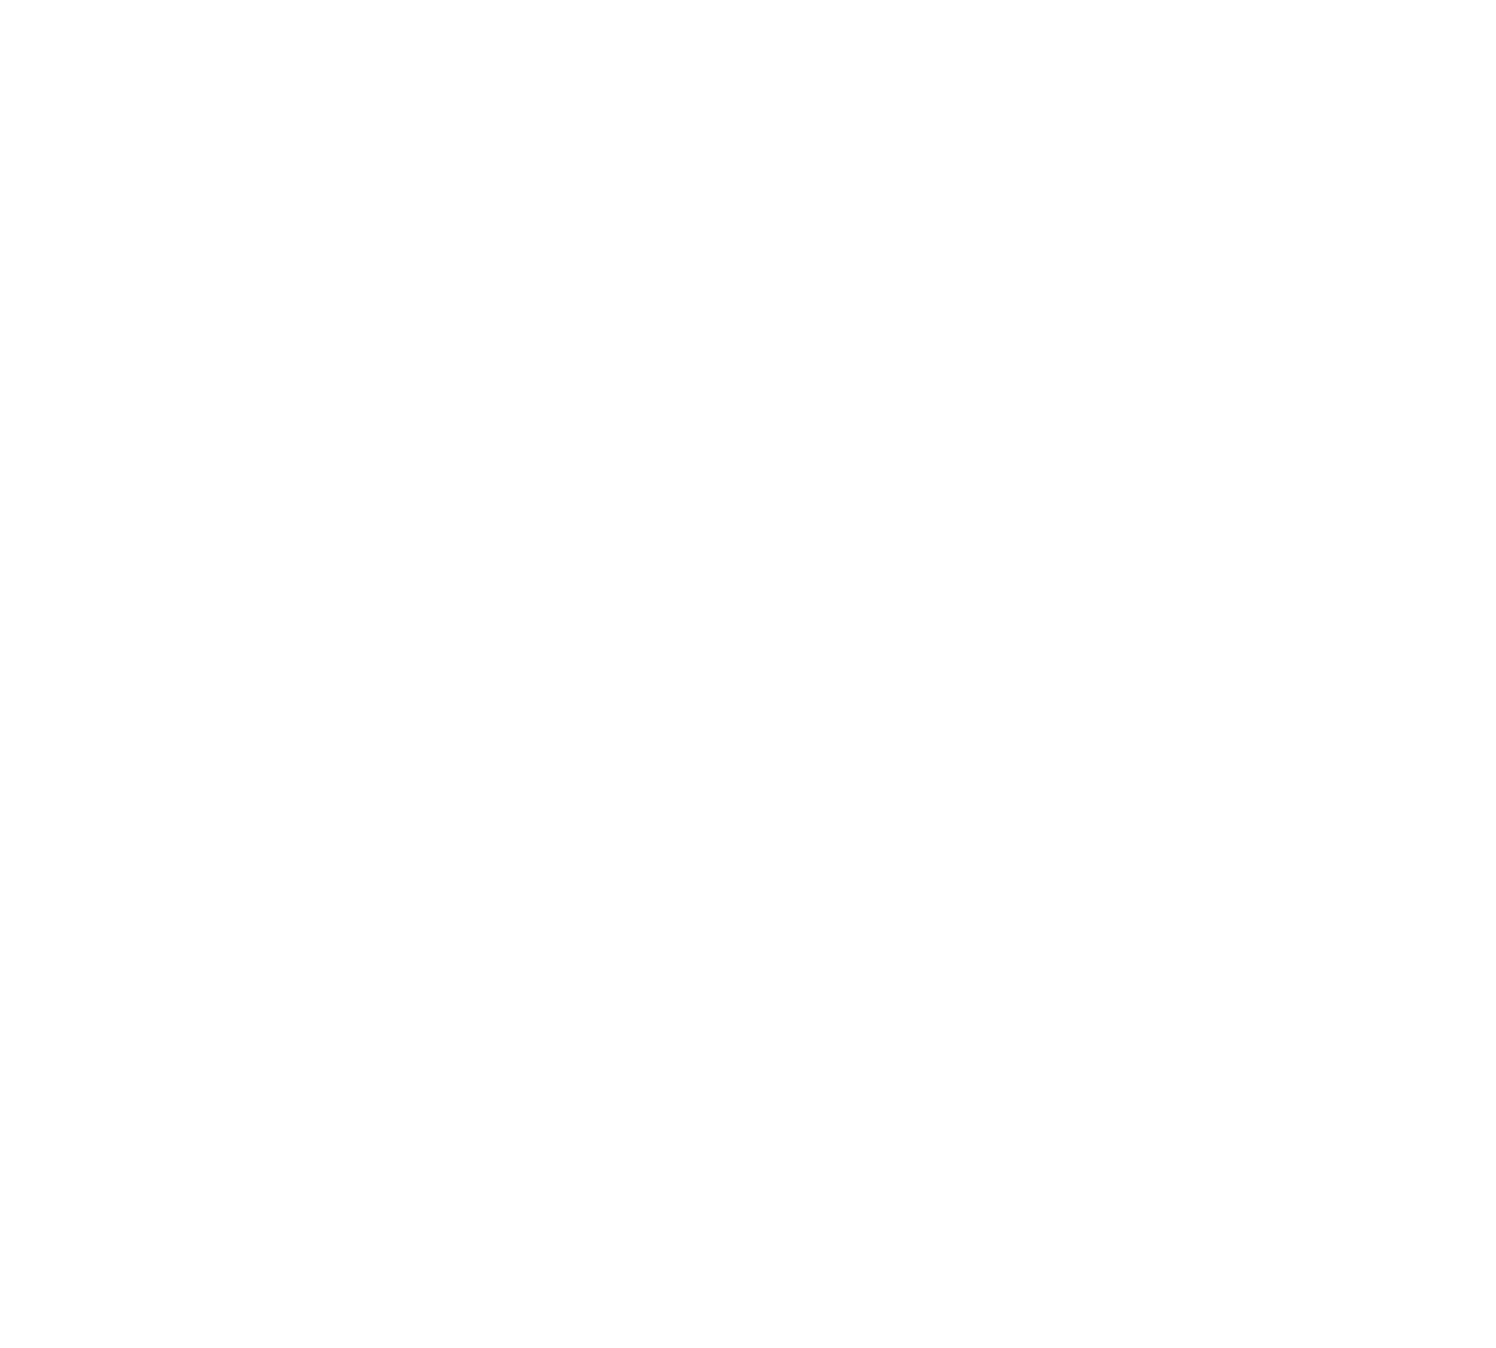 insurance restoration - get back to home sweet home.